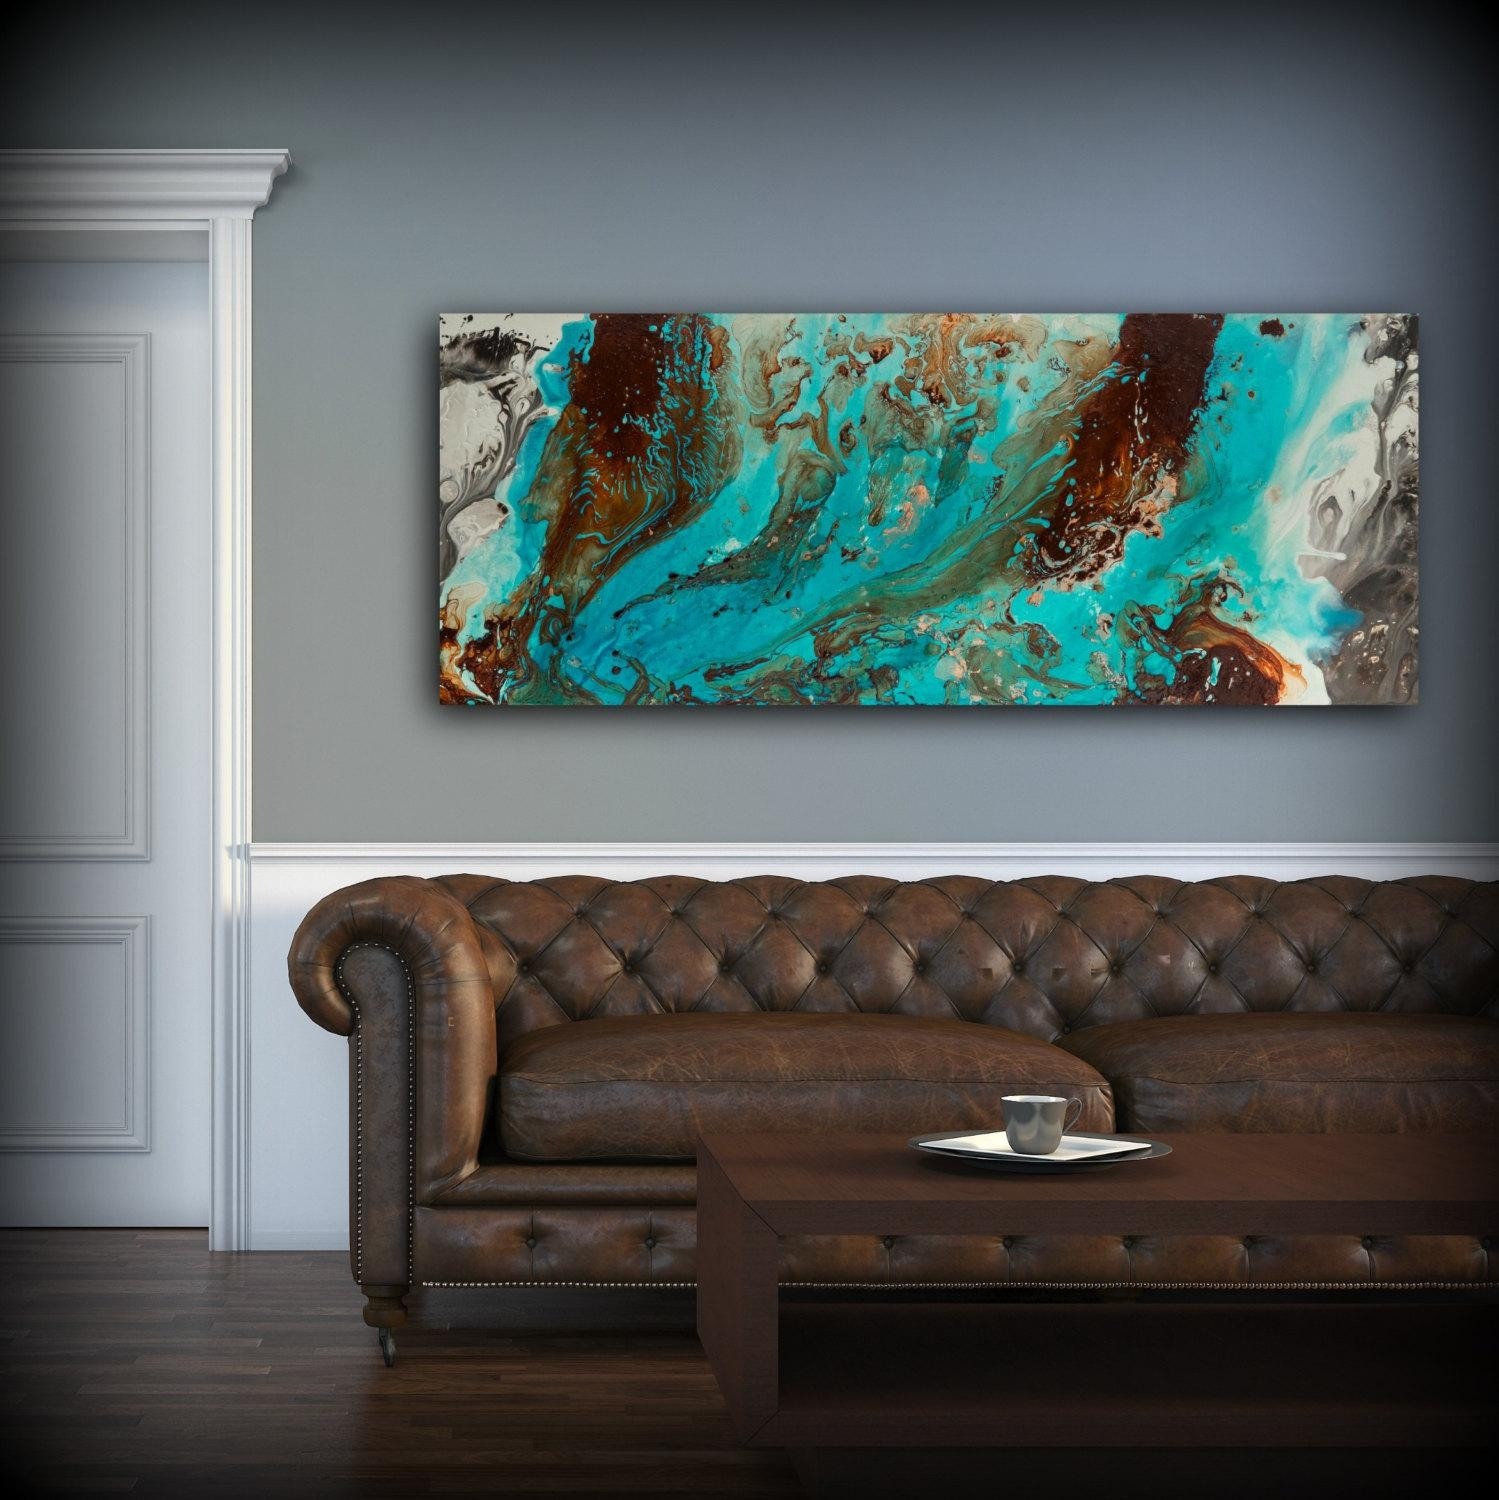 Aqua Print, Blue And Brown Wall Art Decor, Colourful, Bohemian Art Throughout Blue And Brown Wall Art (View 4 of 20)